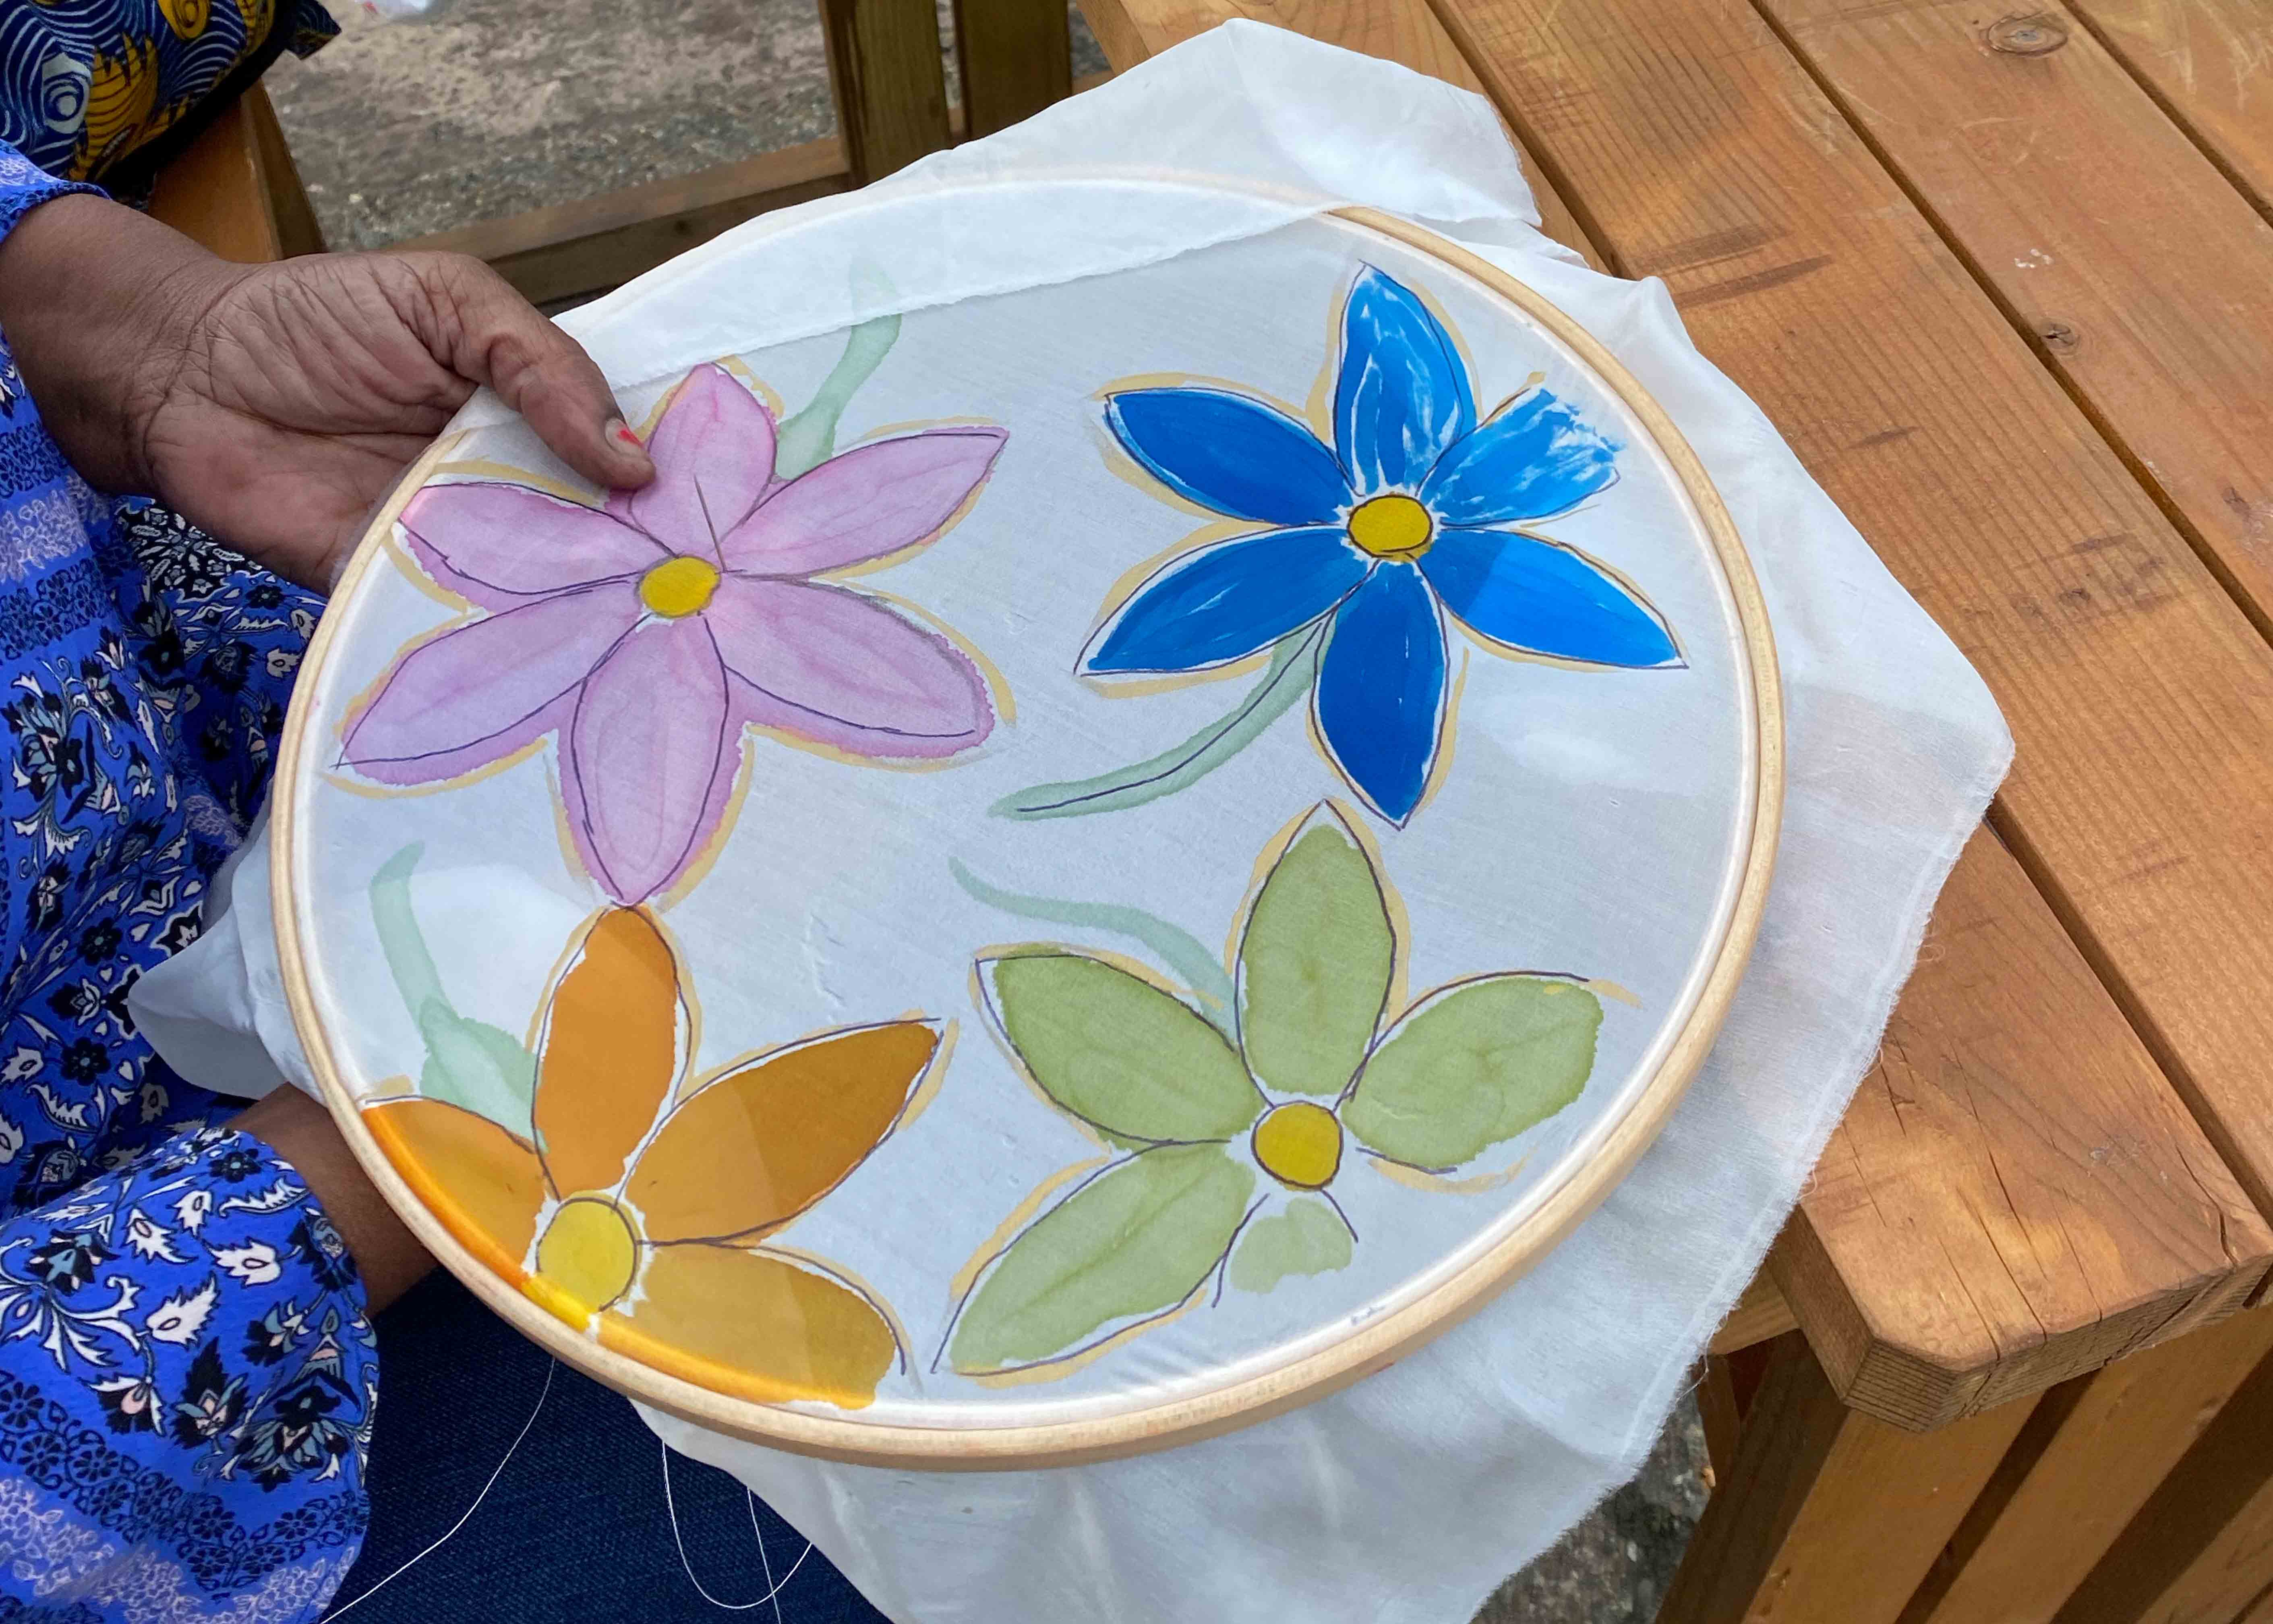 Some silk painted with a floral design